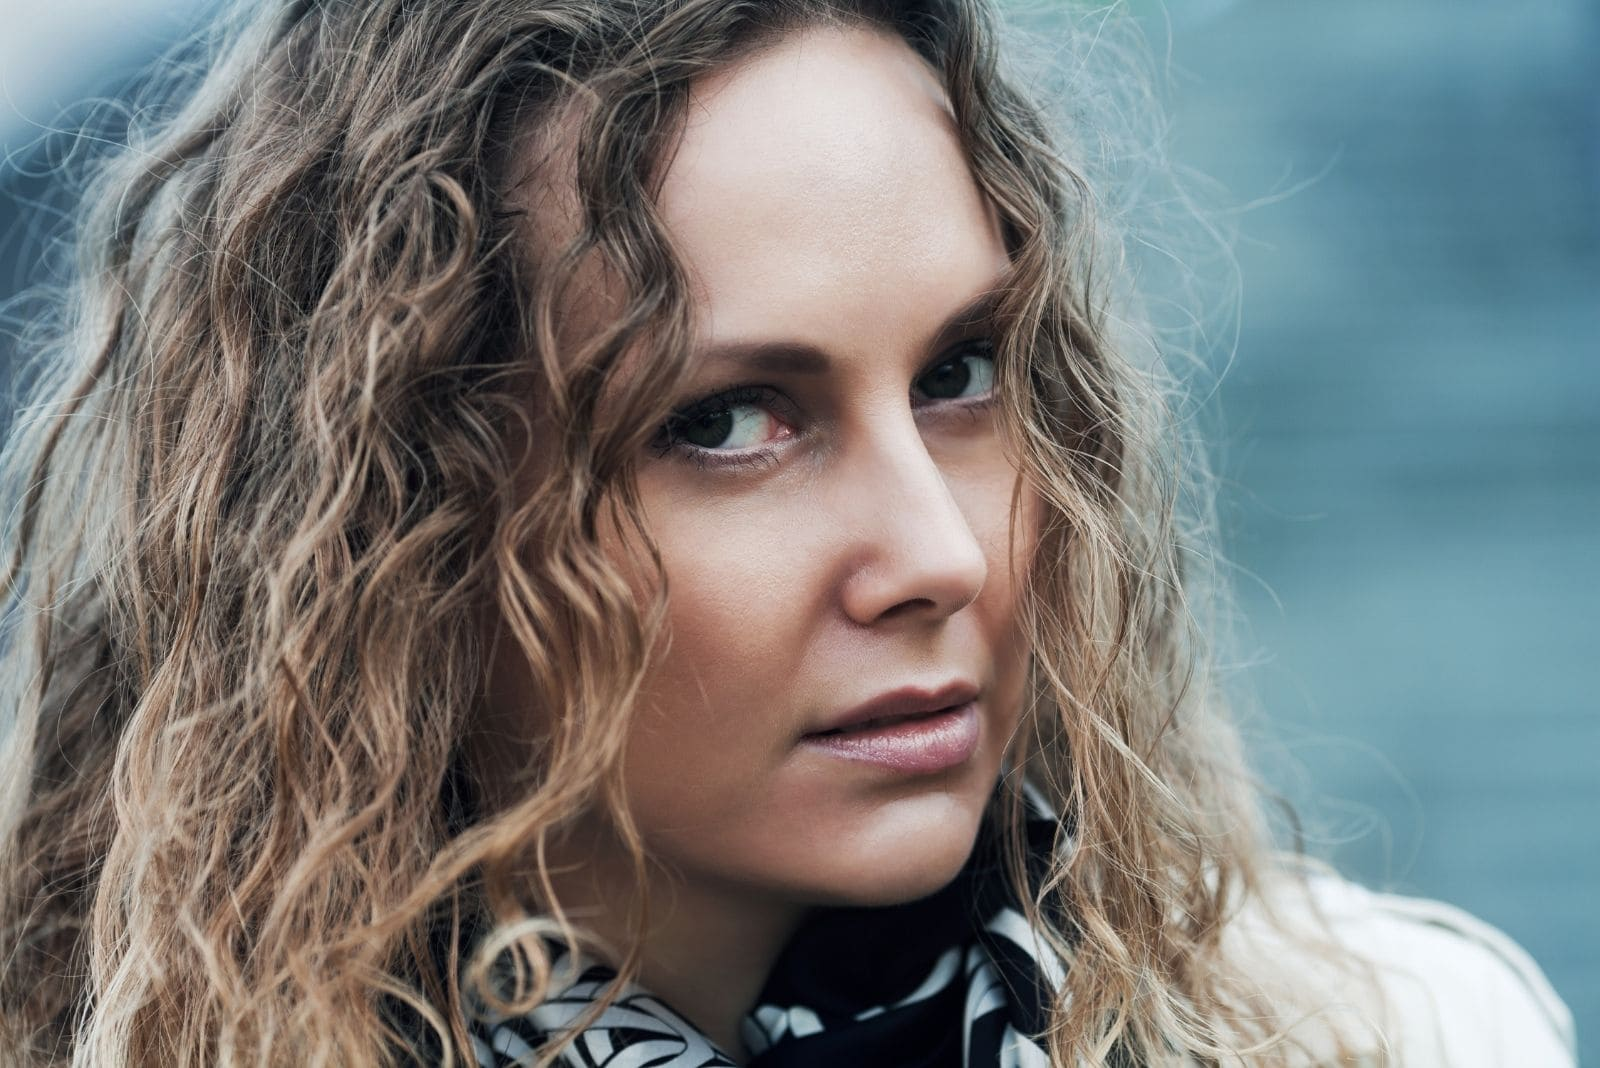 curly blonde haired woman looking at the camera with deep thoughts